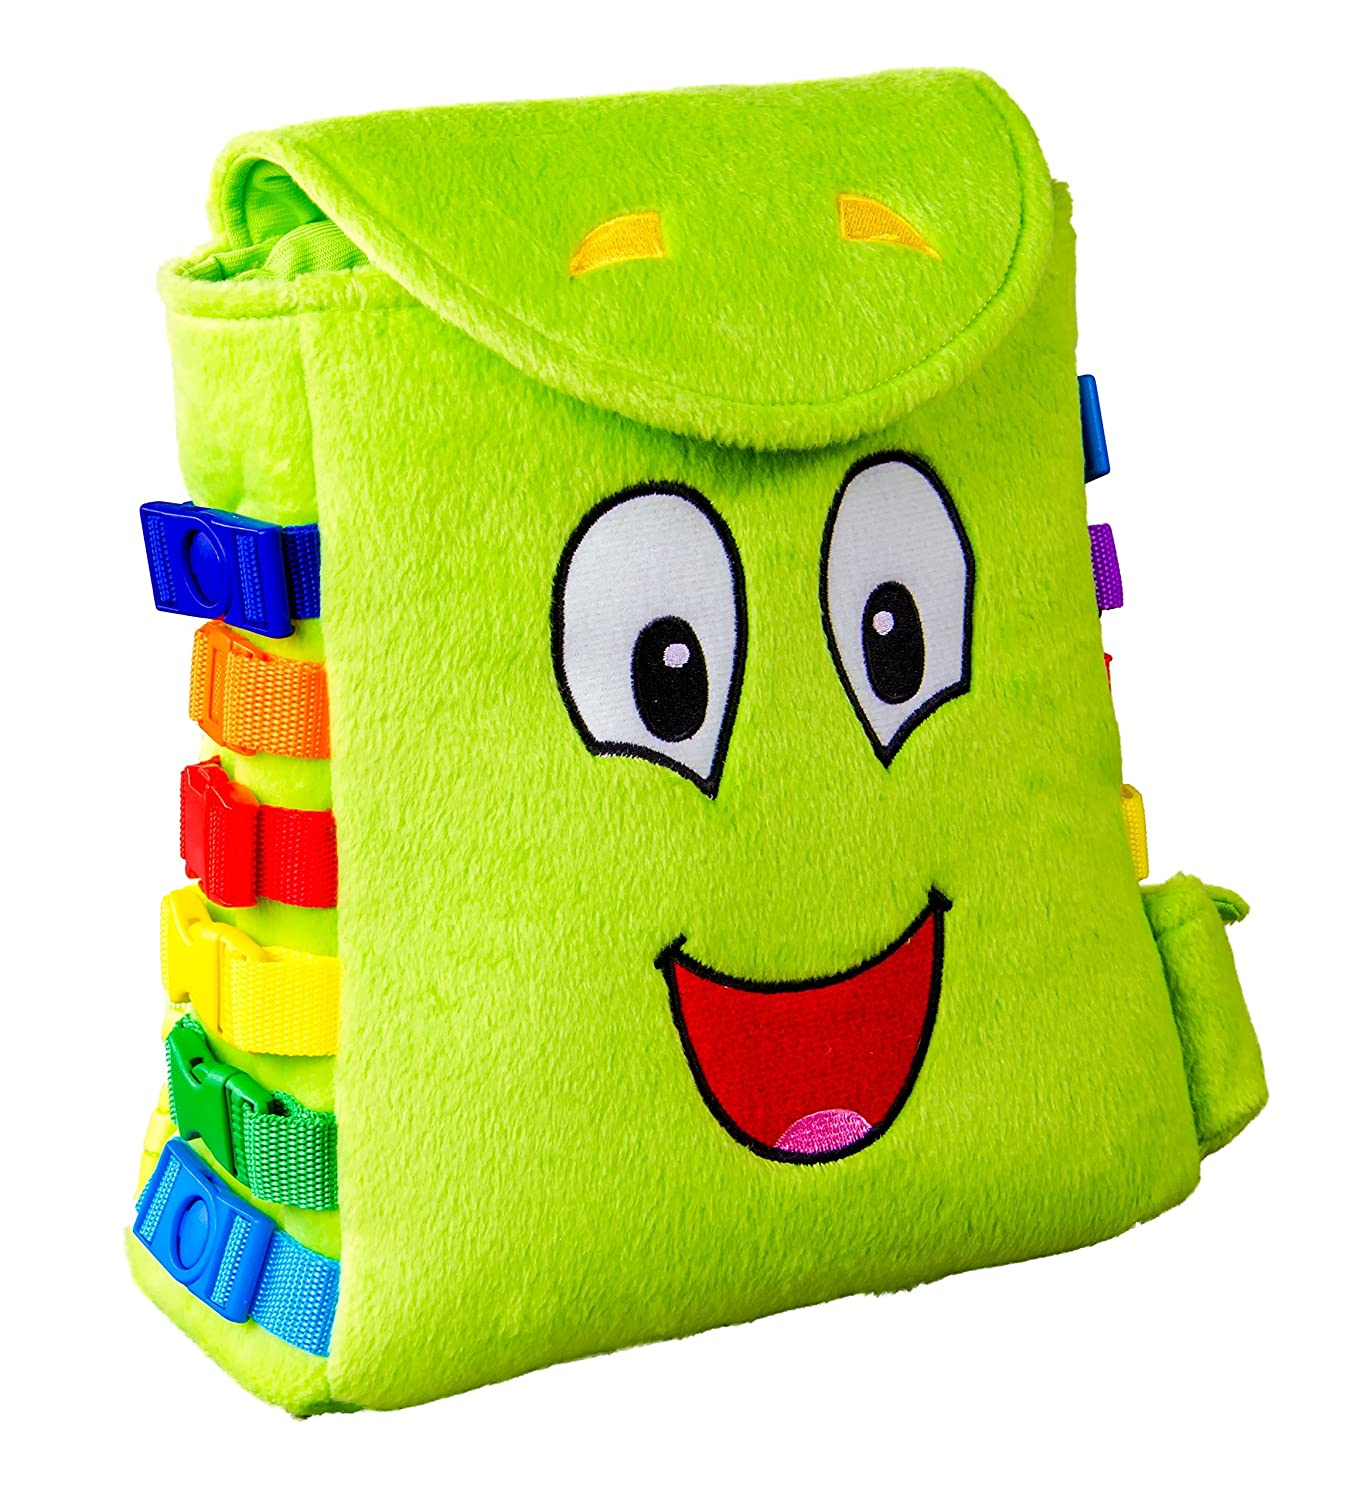 Buckle Toy Buddy Backpack Amazon Toys & Games